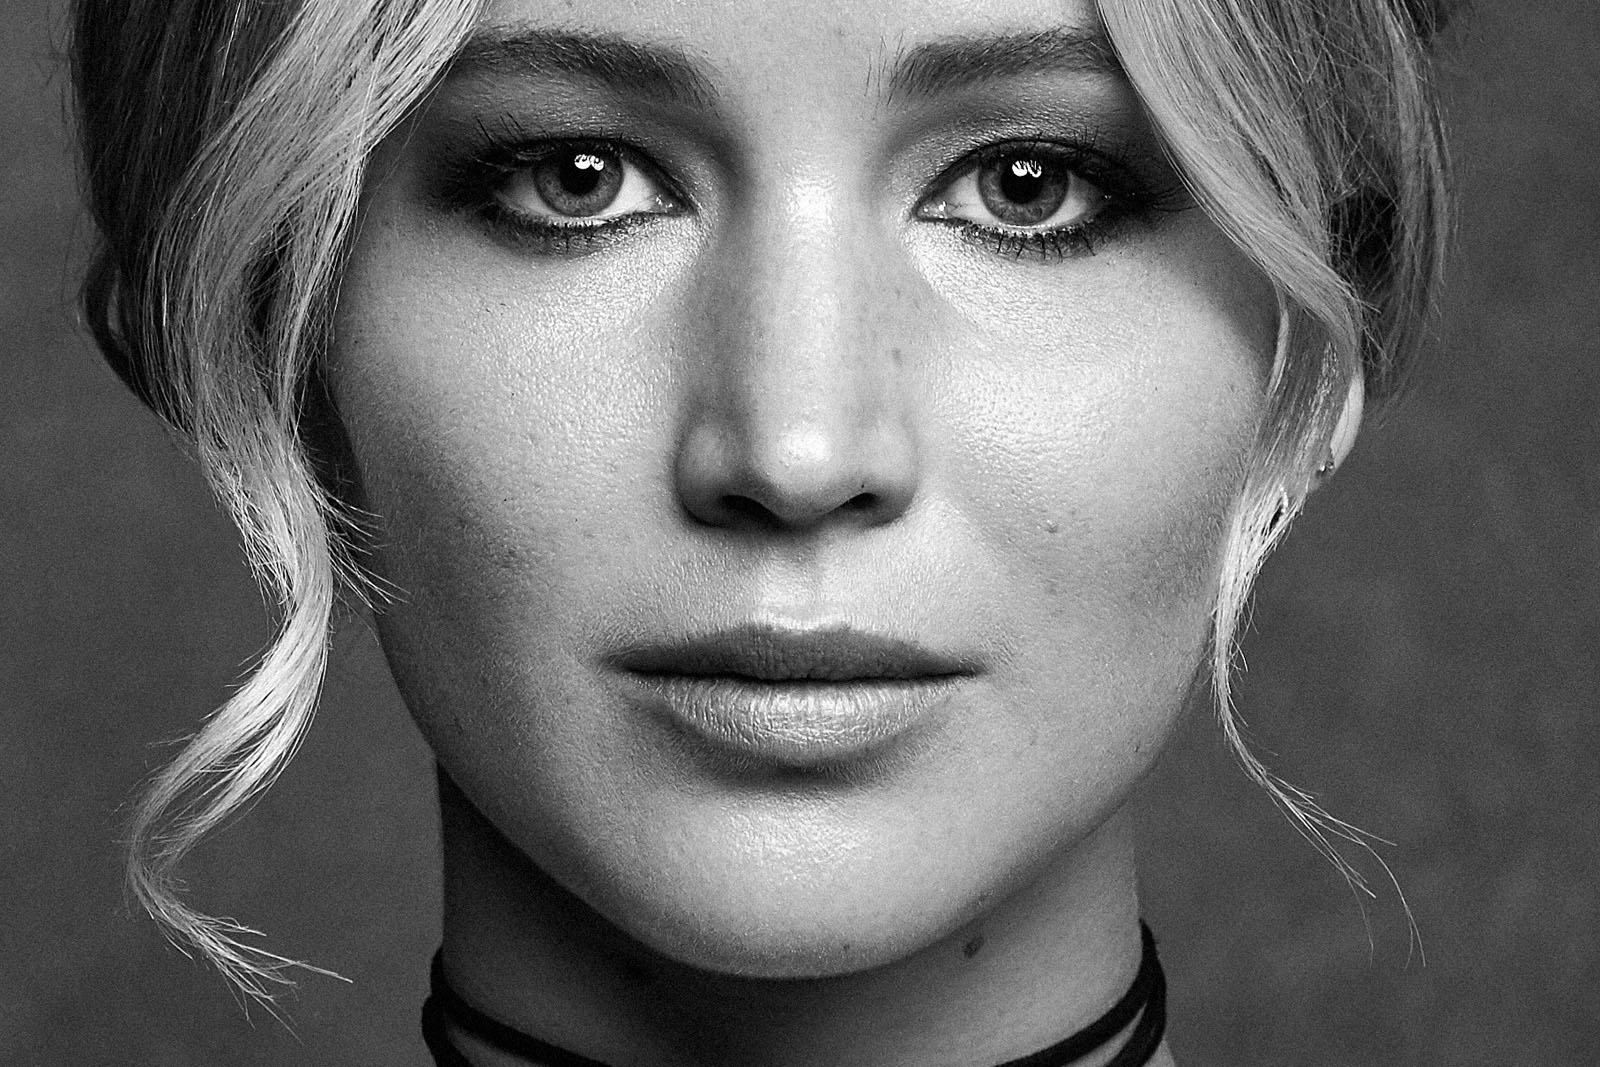 Photographing Jennifer Lawrence